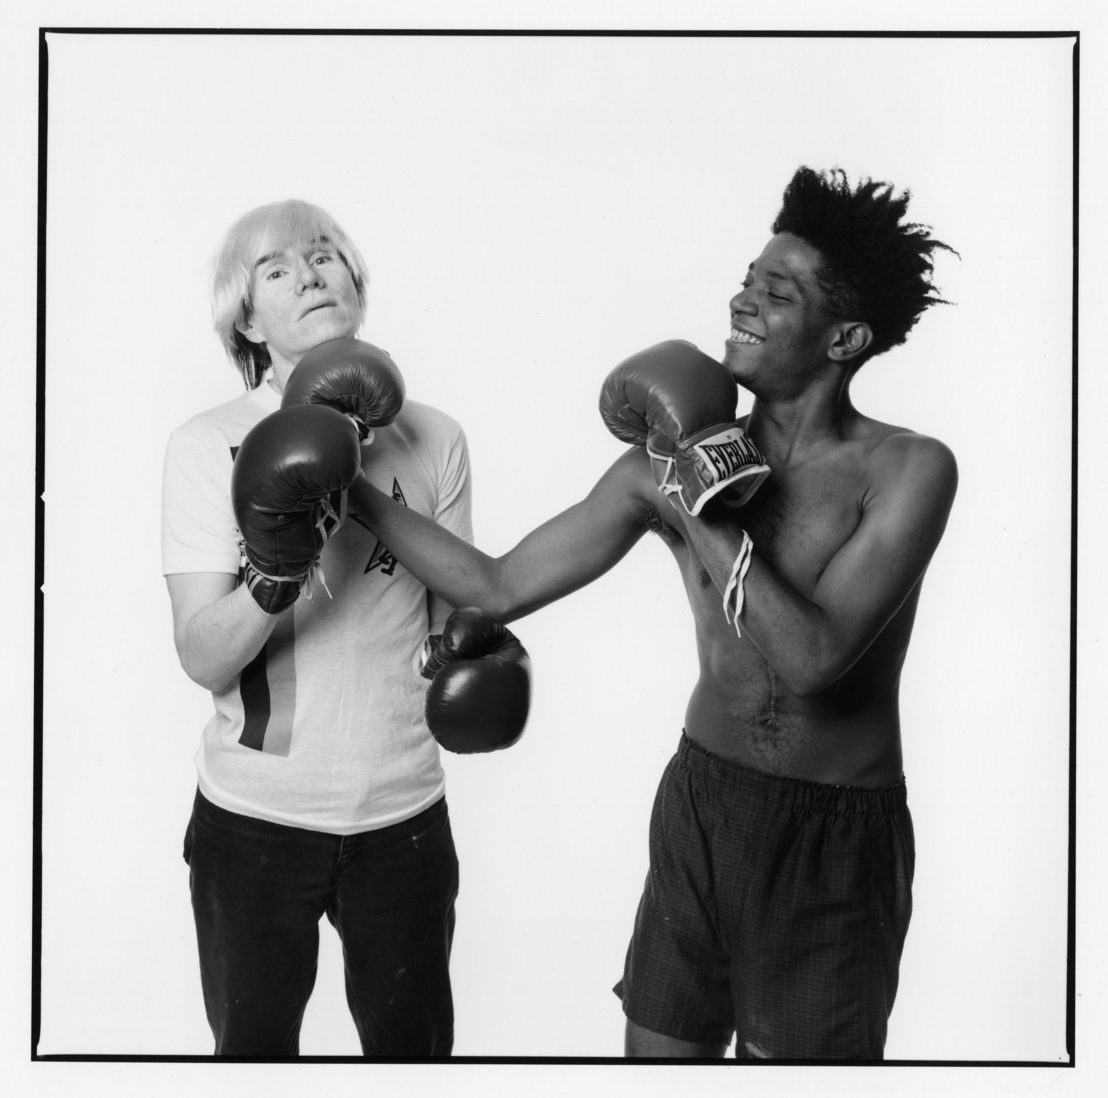 """Andy Warhol & Jean-Michel Basquiat #1 (first roll, first frame of the sitting)"" (July 10 1985) by Michael Halsband"